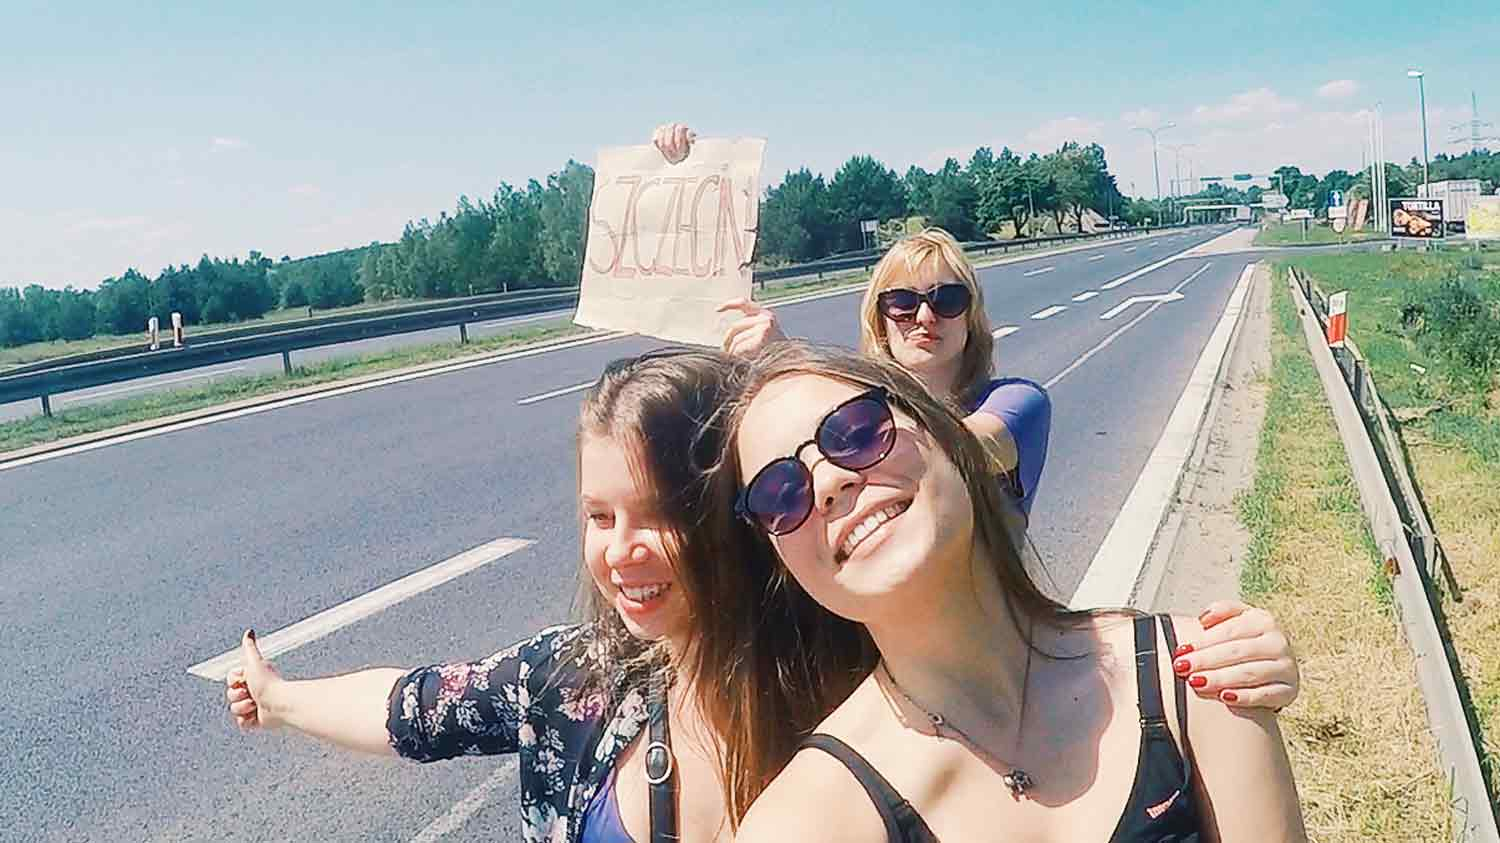 hitchhiking with friends